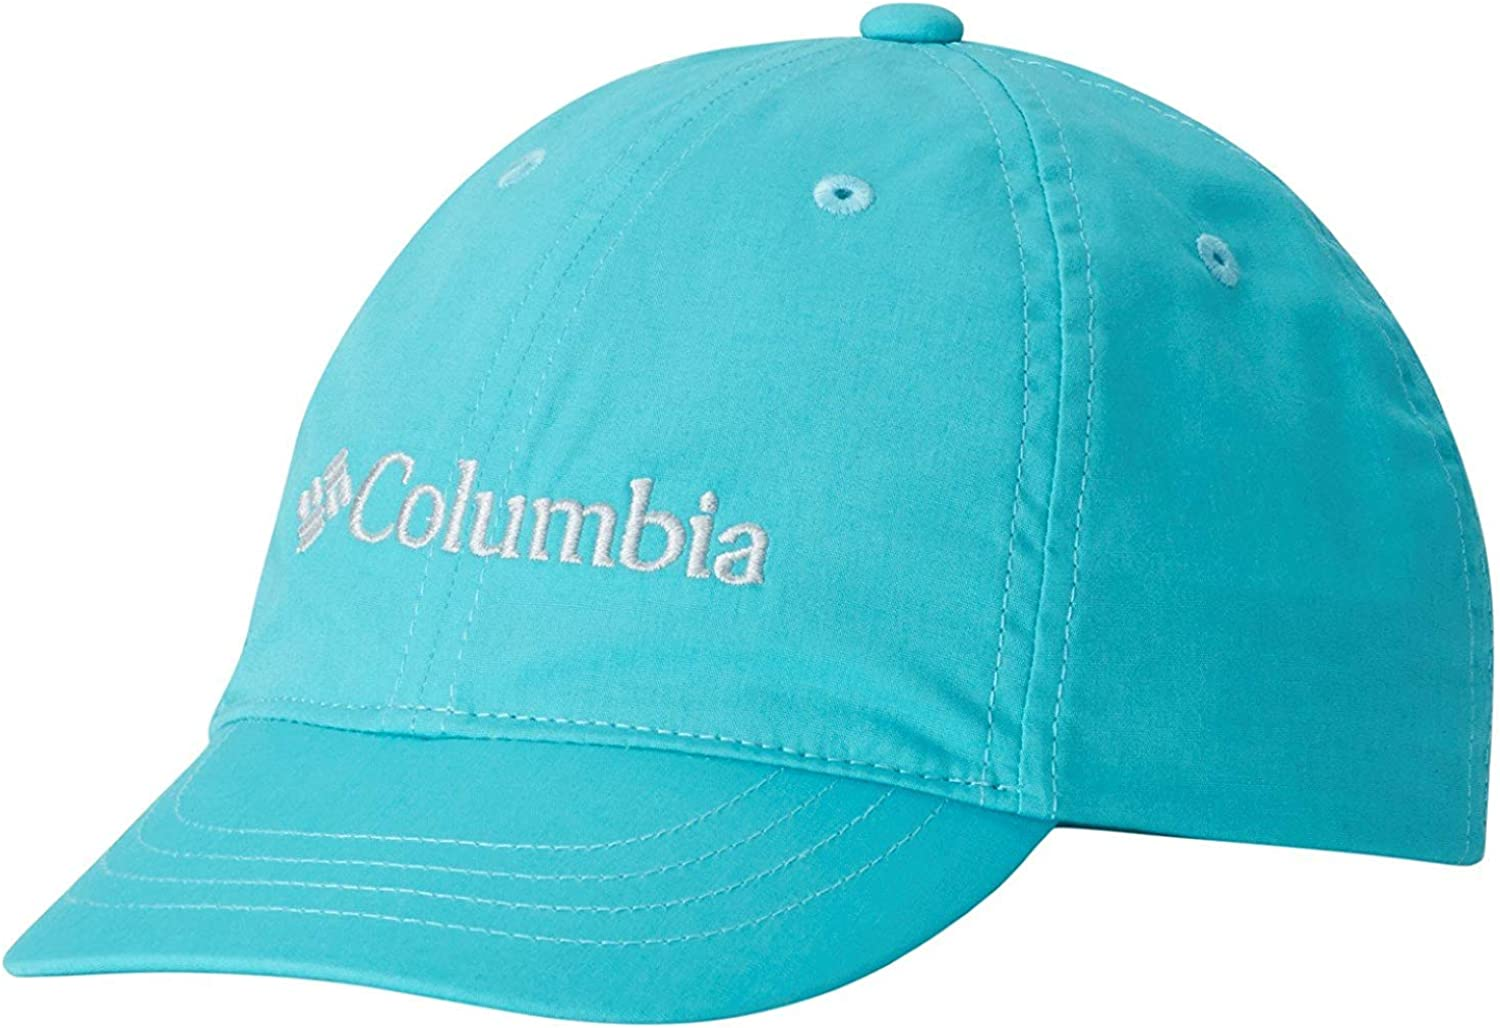 algod/ón Columbia 1644971 Youth Adjustable Ball Cap Gorra para ni/ños